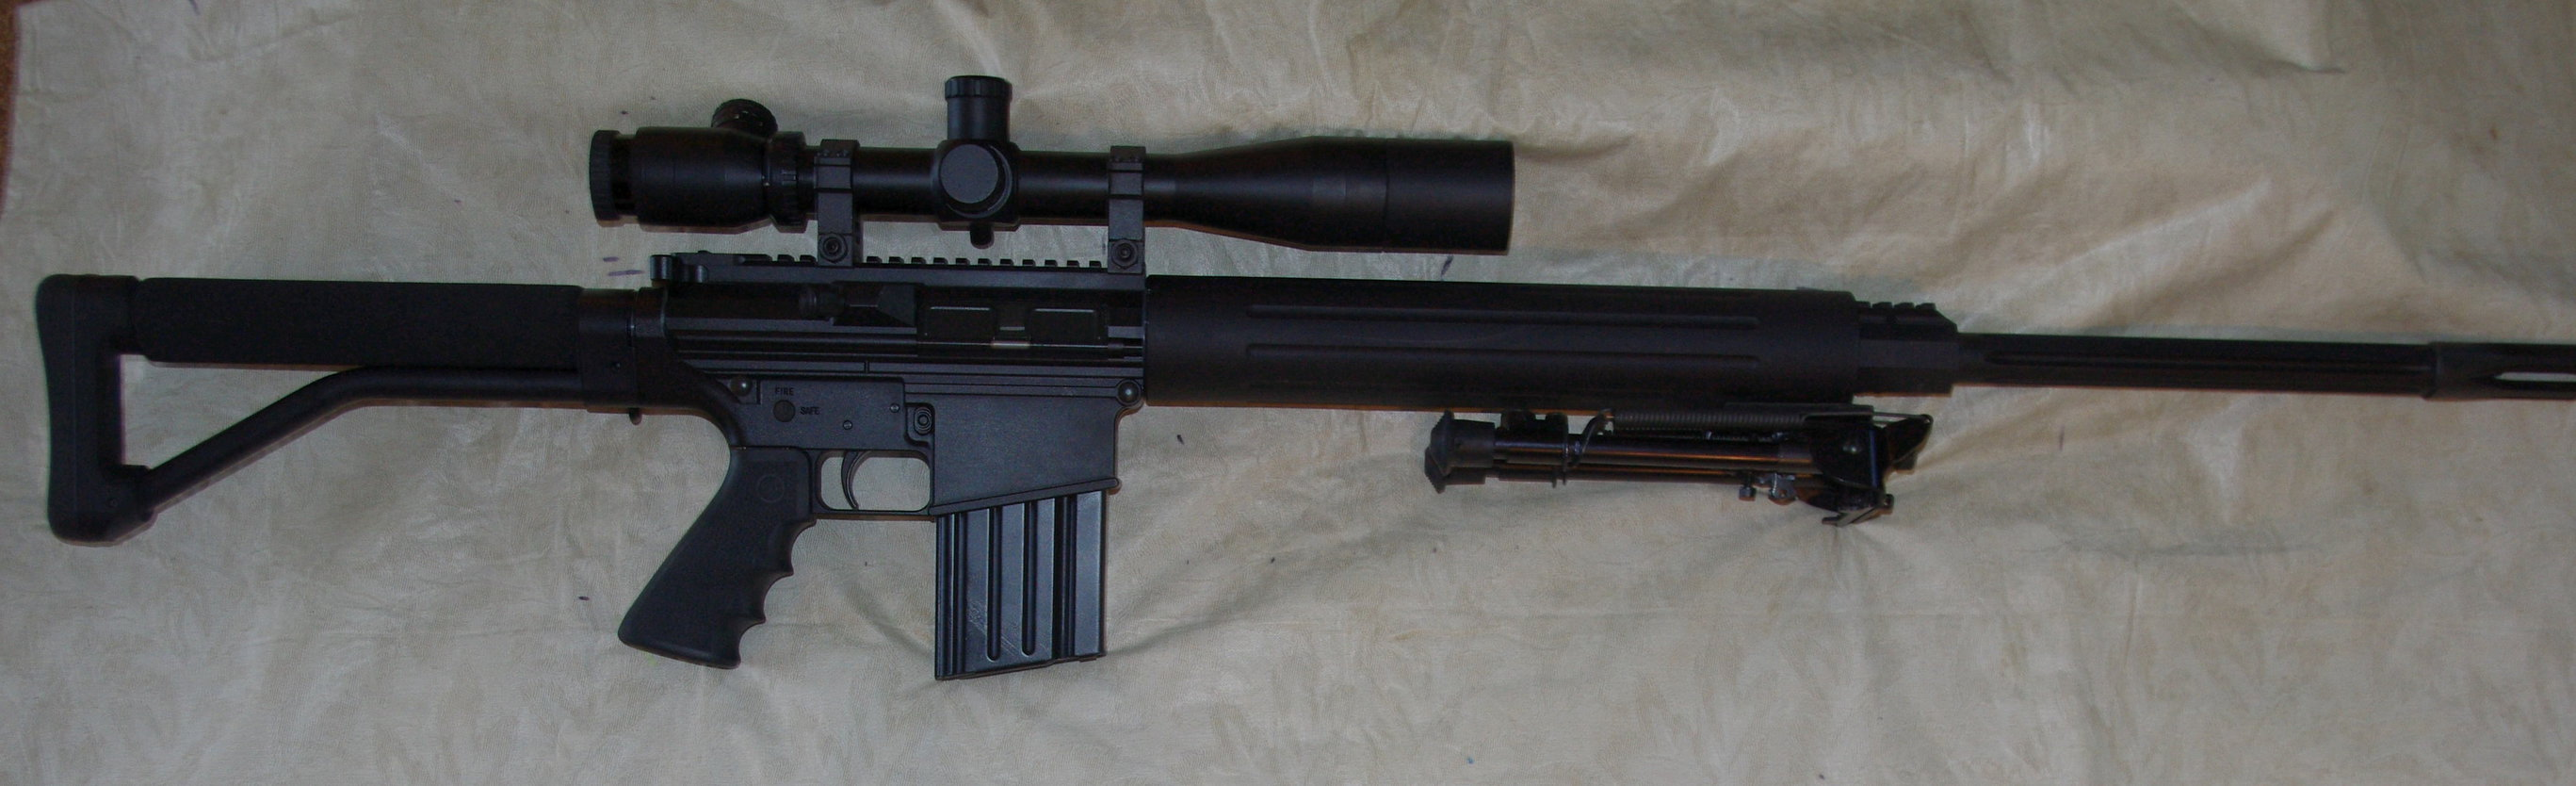 Click image for larger version.  Name:Rifle LR308.jpg Views:23 Size:306.2 KB ID:1290905